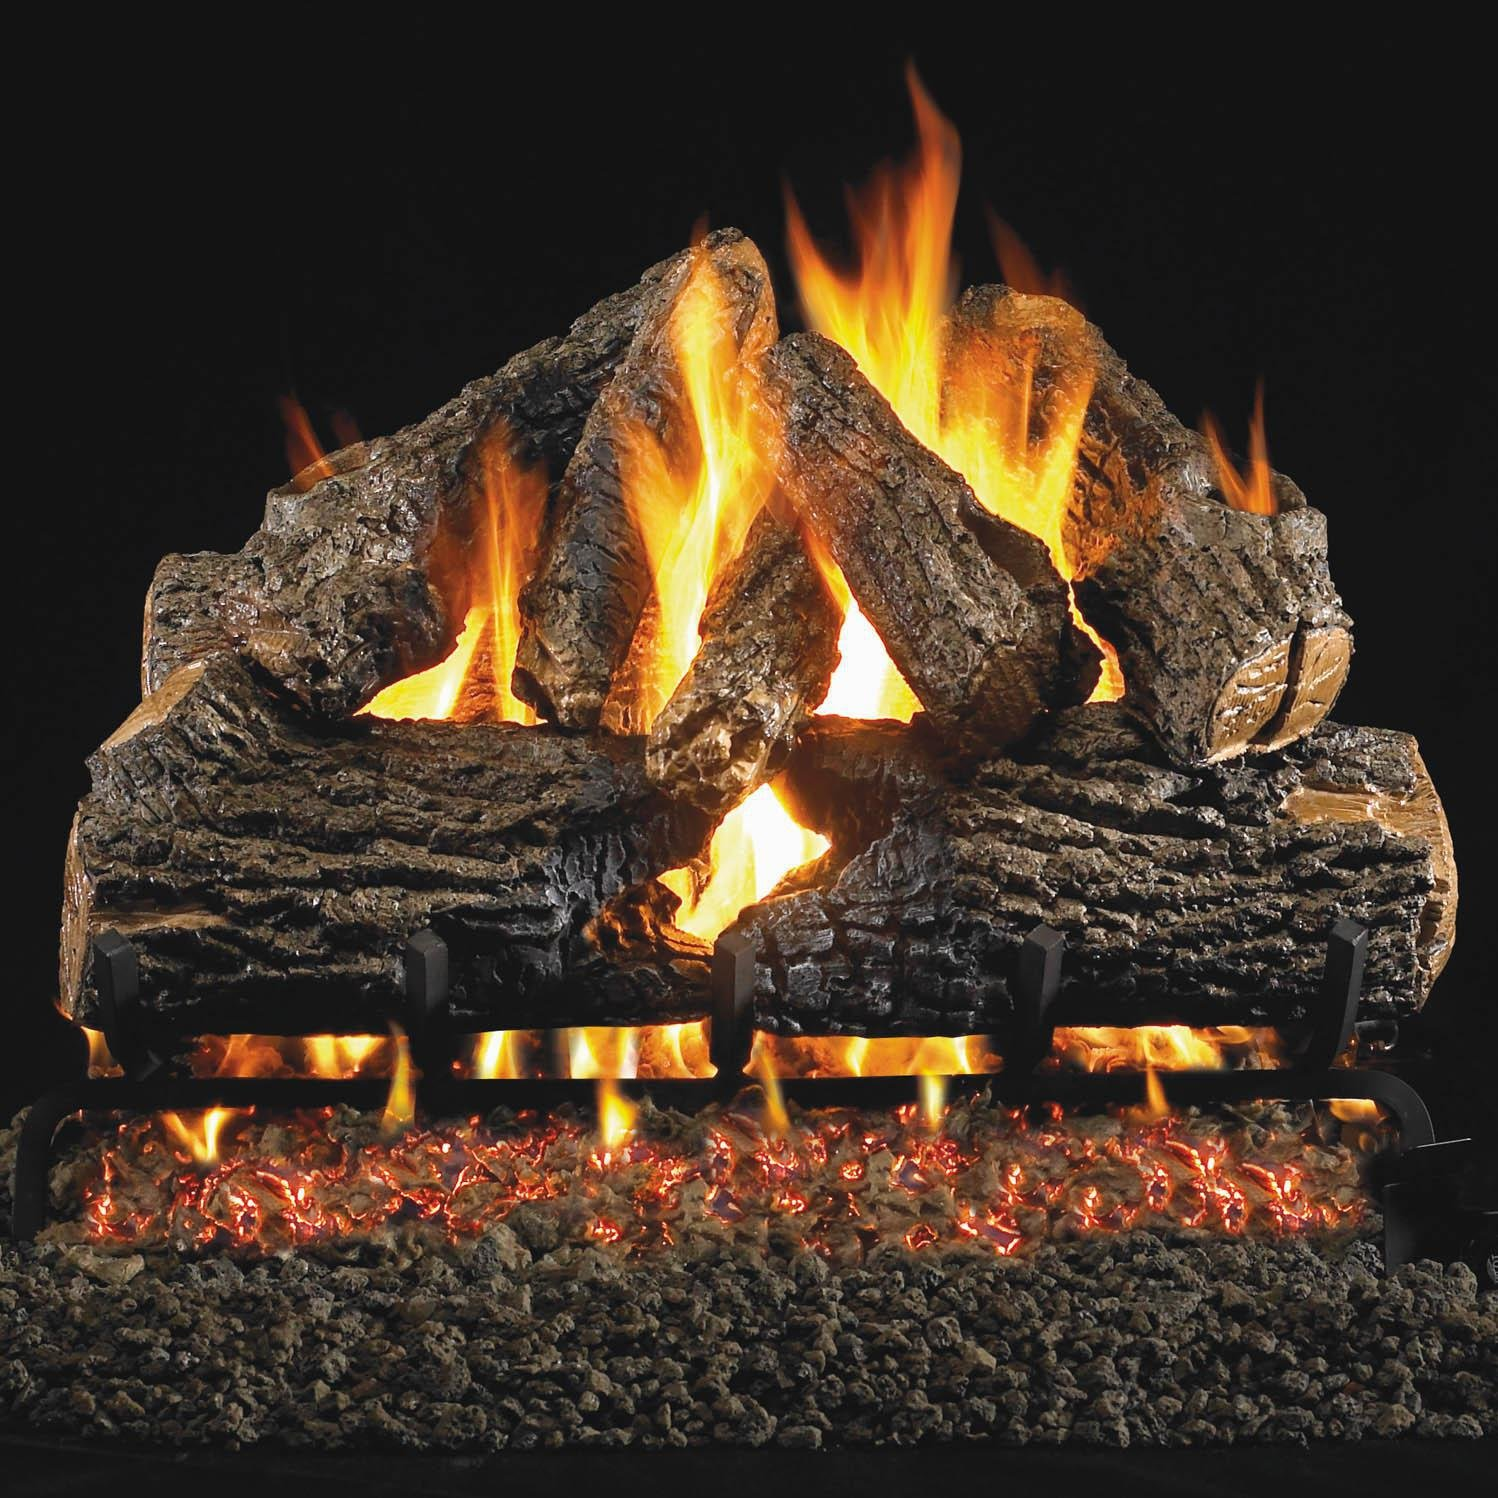 Buy Peterson Real Fyre 18-inch Charred Oak Log Set With Vented Natural Gas G4 Burner - Match Light: Patio